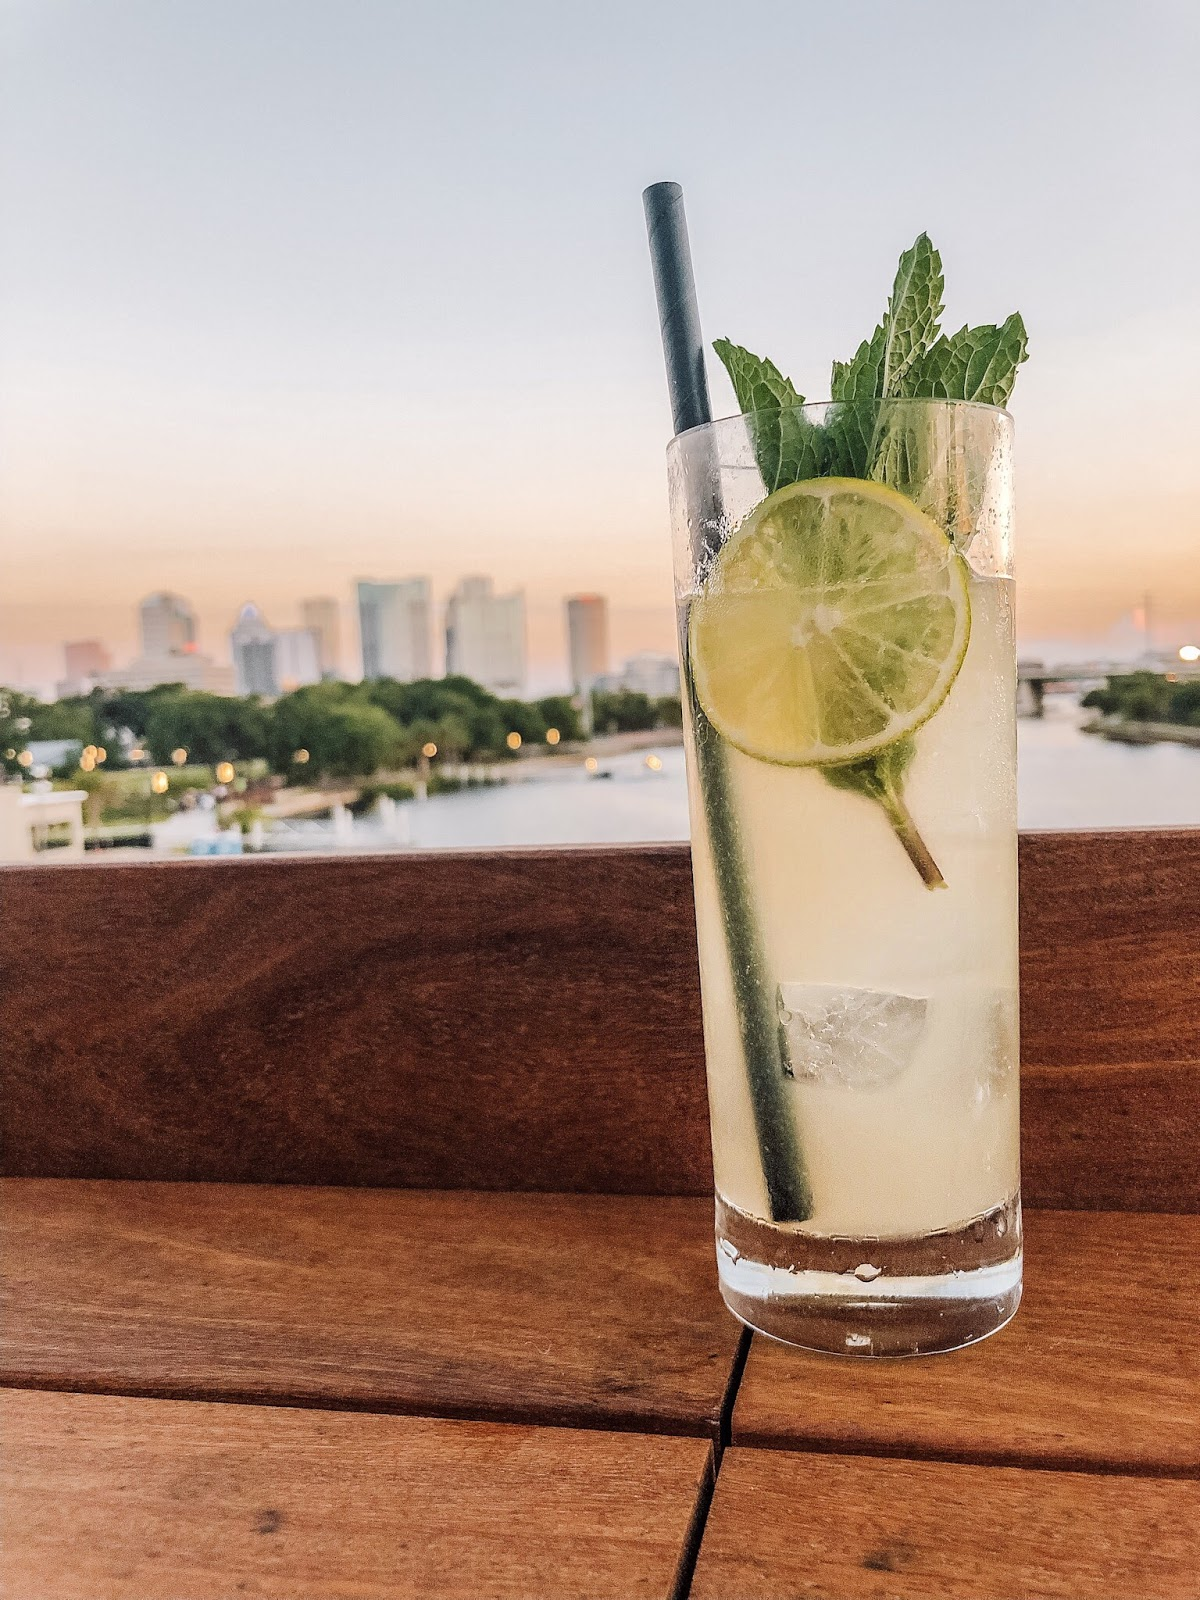 The refreshing Daisy De Santiago drink at M.Bird, the new rooftop bar on top of Armature Works in Tampa, Florida